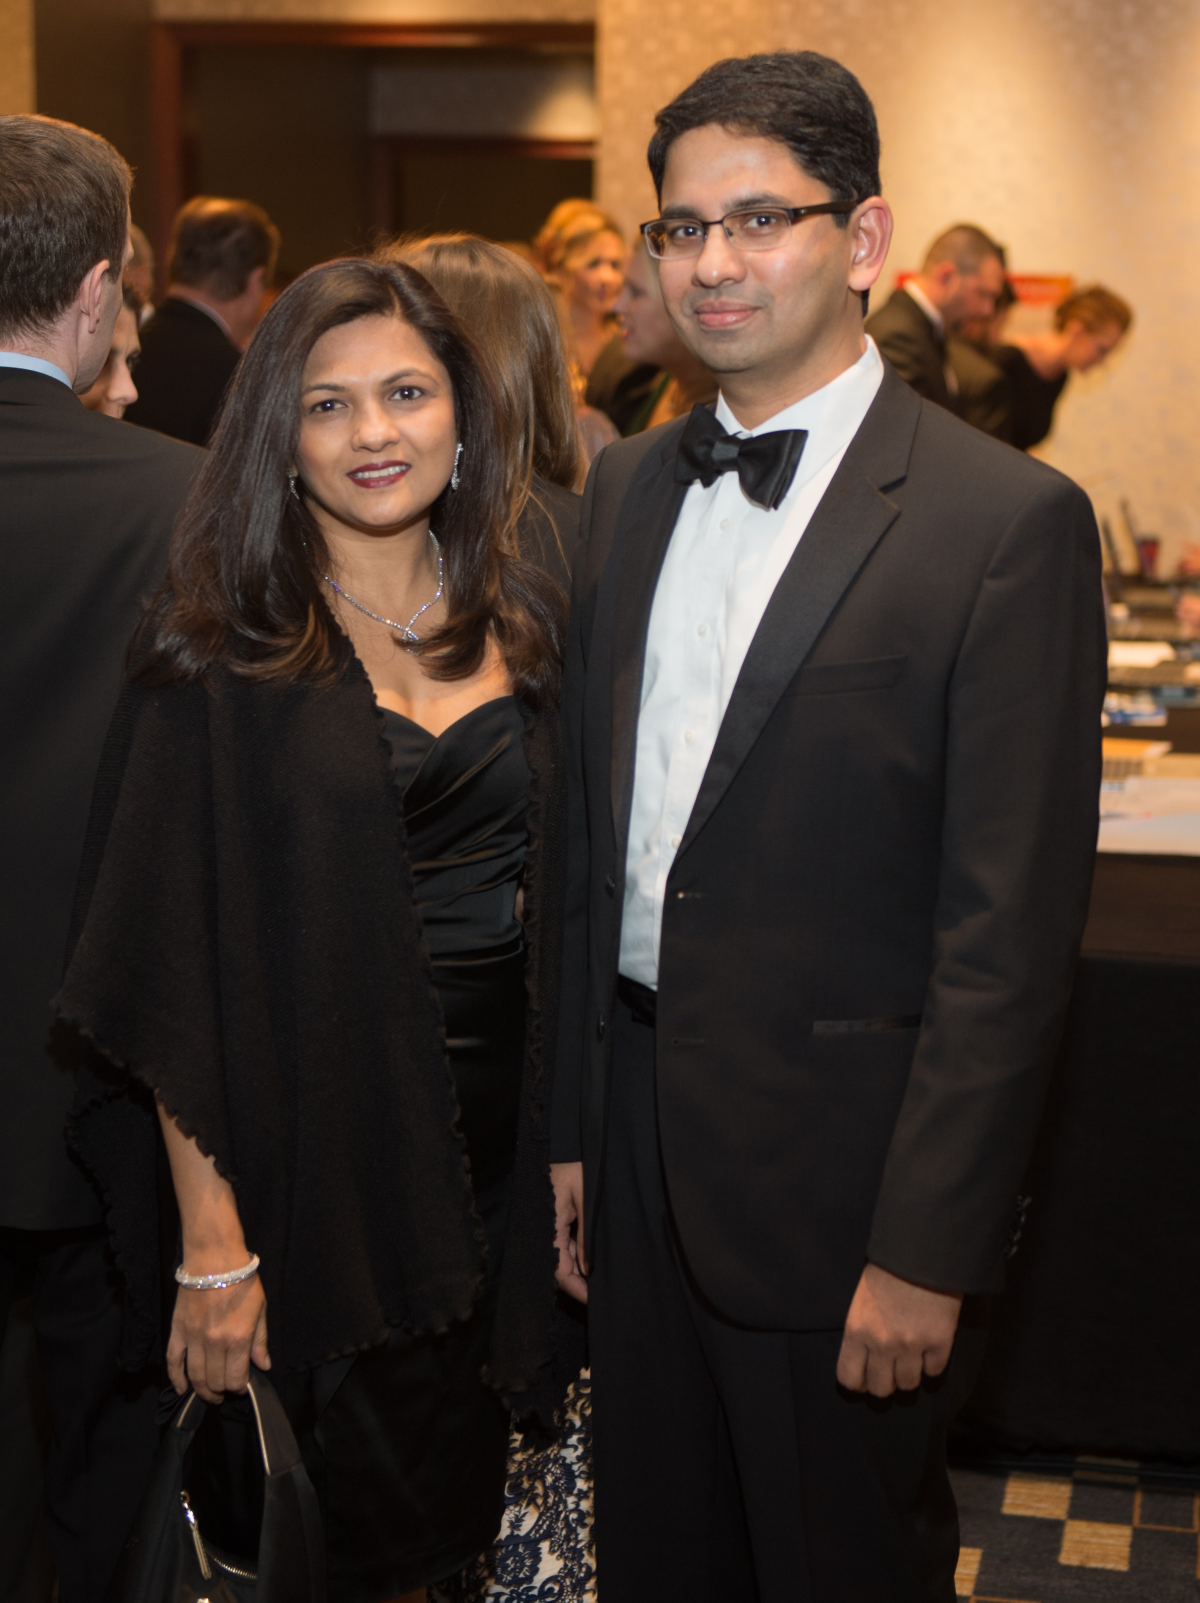 Spirits soar at Pink Door Gala as crowd raises funds for